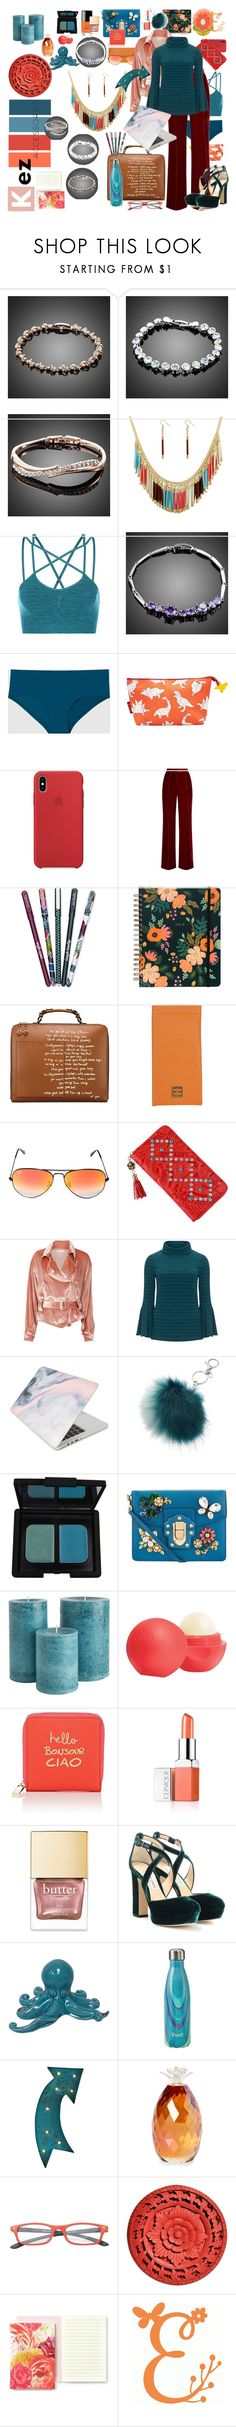 """Kezaccessories Exclusive Accessories"" by kayce35 ❤ liked on Polyvore featuring Sweaty Betty, La Senza, Disaster Designs, Racil, Vera Bradley, Tory Burch, Ray-Ban, Fleur du Mal, Manon Baptiste and Recover"